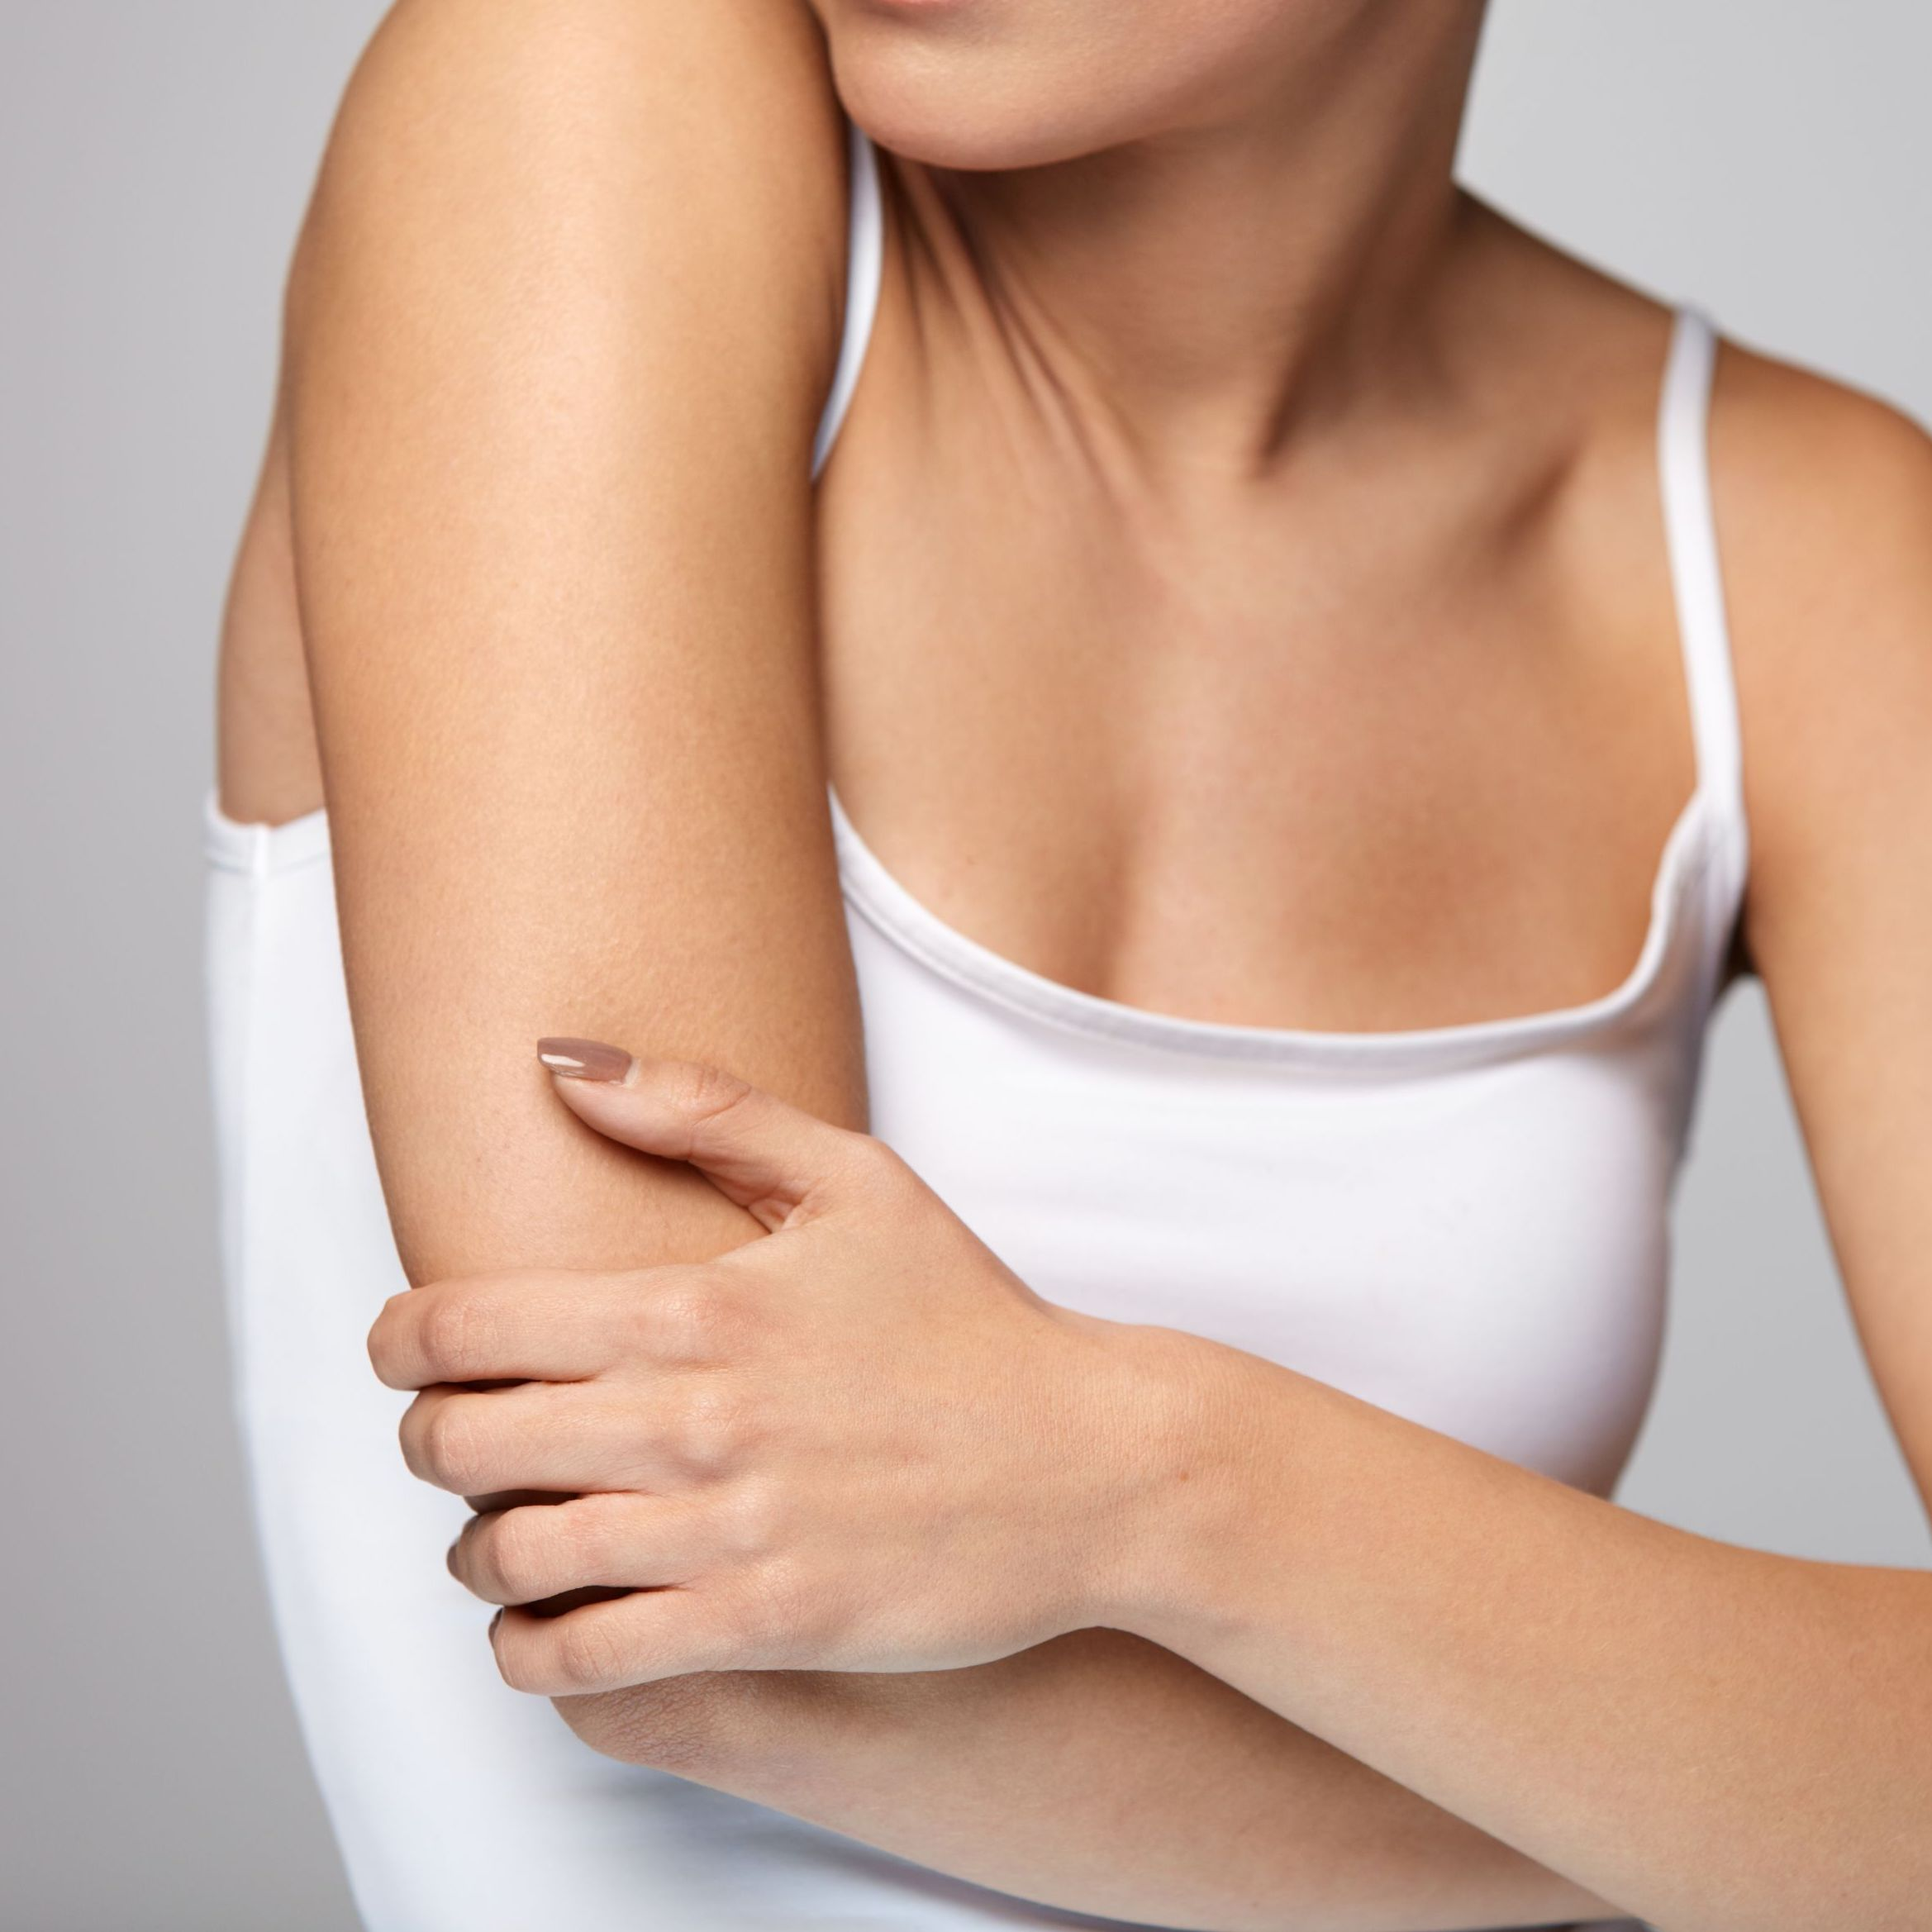 UPPER Arm Lift - A Brachioplasty can reduce the excess underarm fat and skin and help to reshape the arm, giving smoother skin and slender contours.